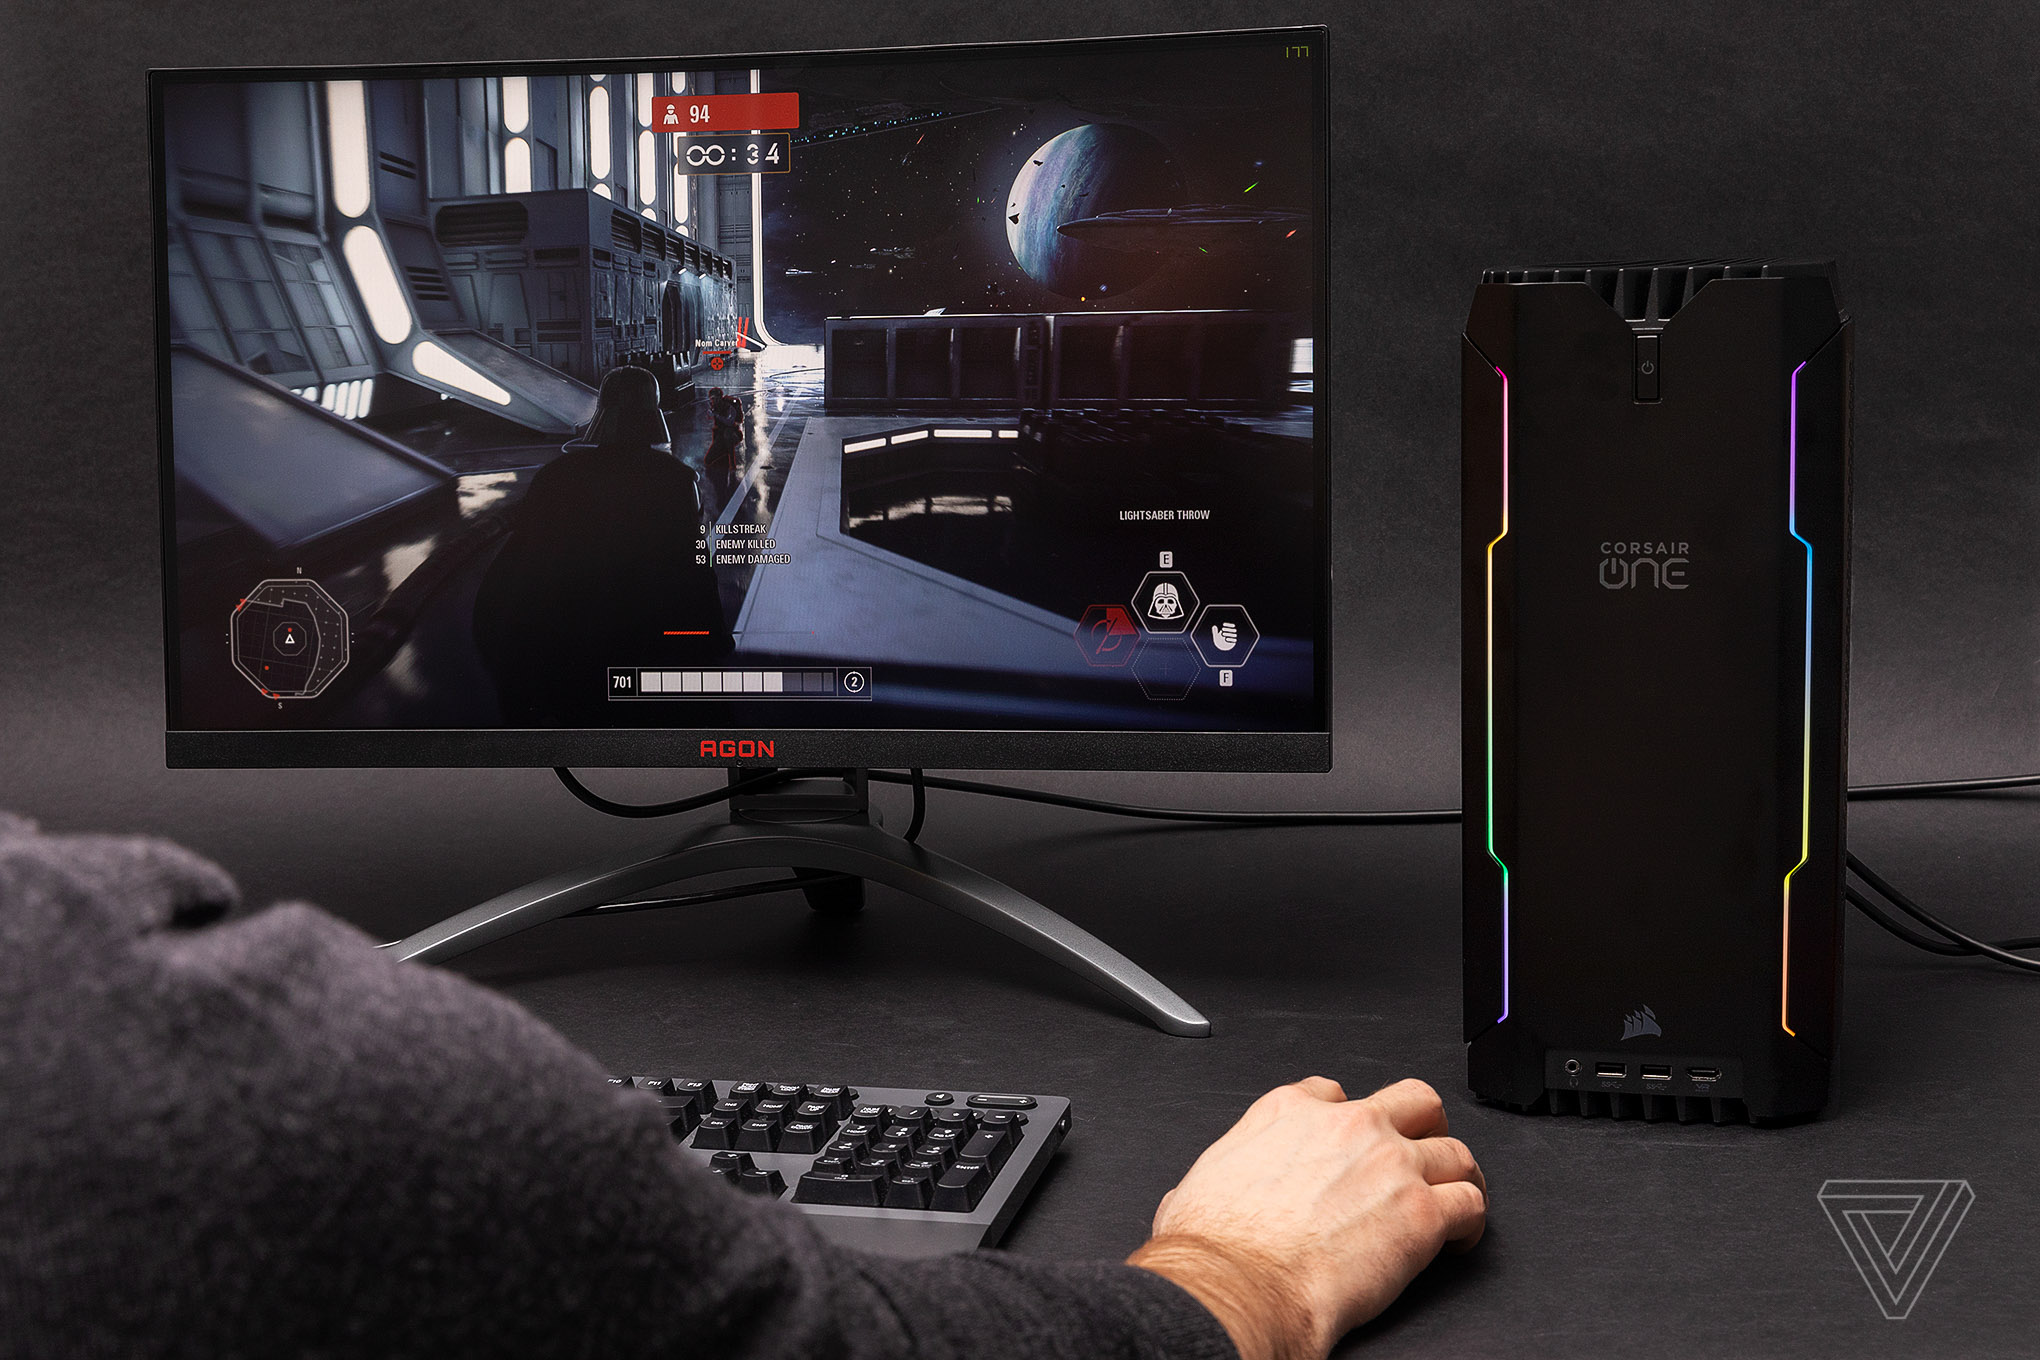 Cox wants gamers to pay $15 more for 'elite' internet that